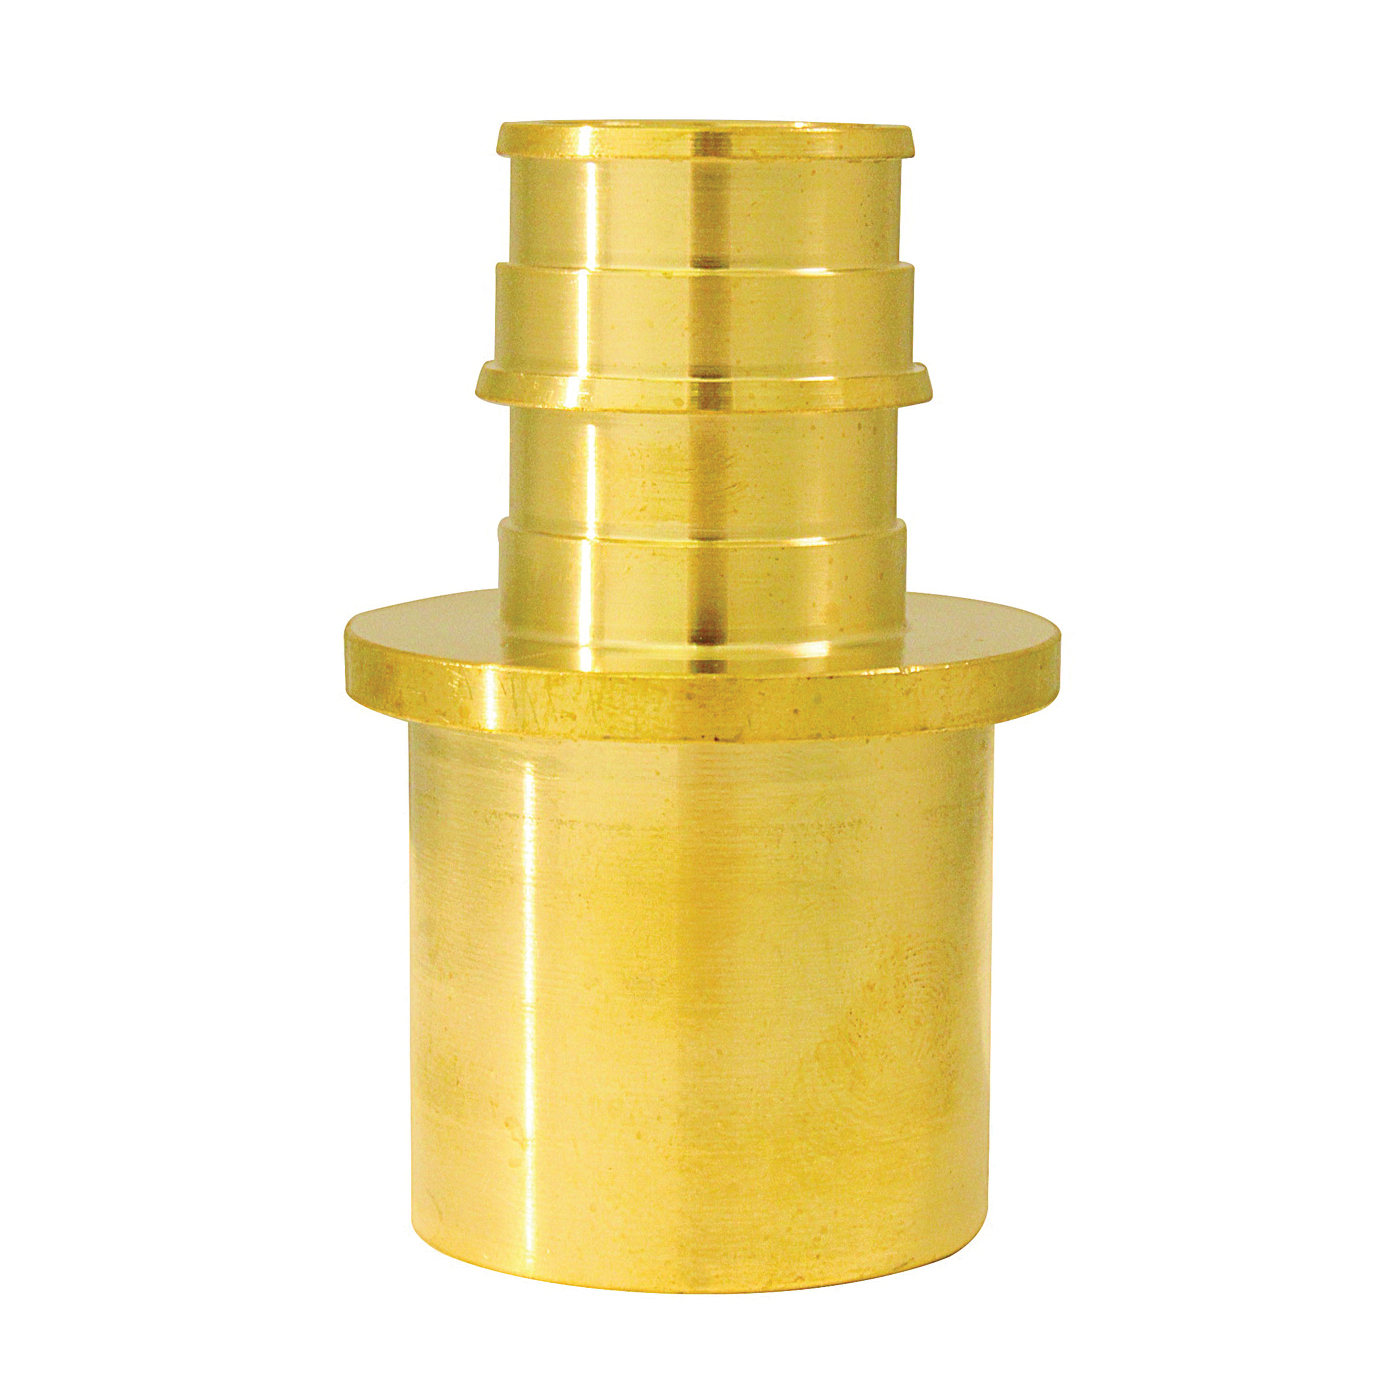 Picture of Apollo ExpansionPEX EPXMS341 Reducing Solder Adapter, 3/4 x 1 in, Barb x Male Sweat, Brass, 200 psi Pressure